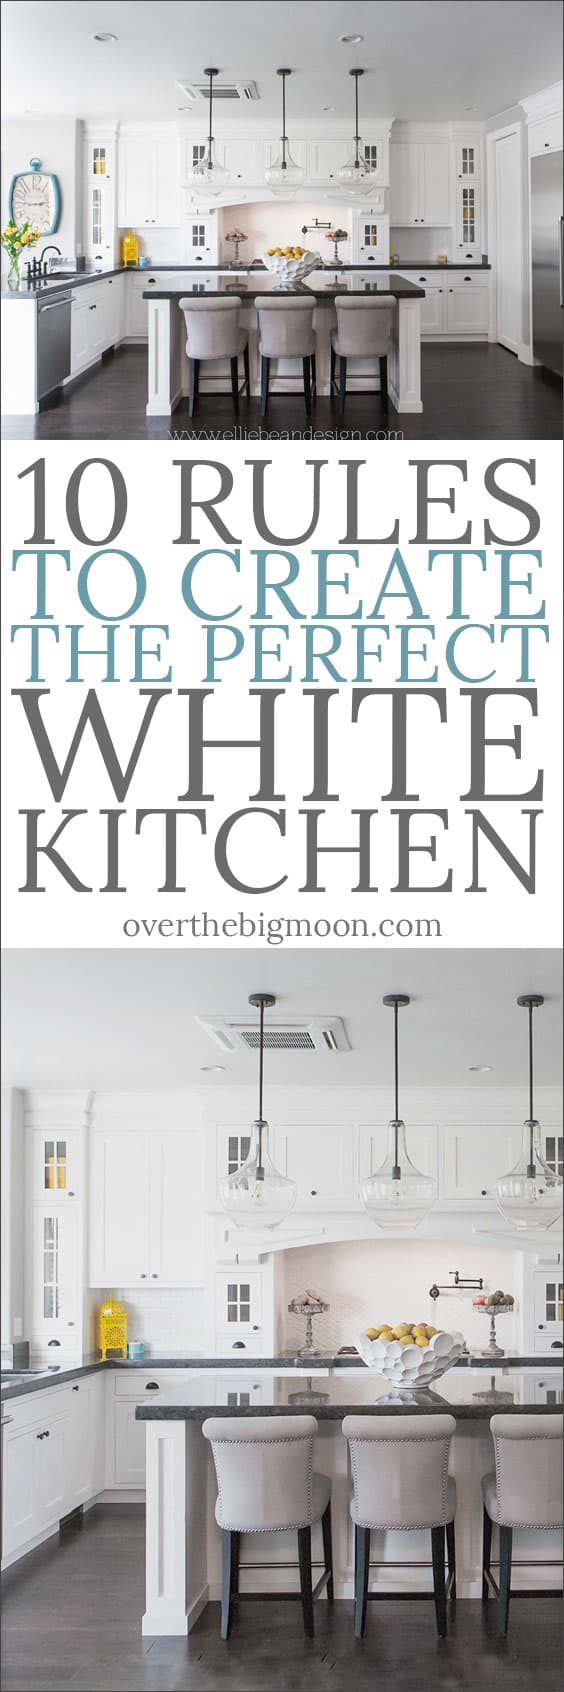 https://overthebigmoon.com/wp-content/uploads/2014/03/10-rules-to-create-the-perfect-white-kitchen.jpg